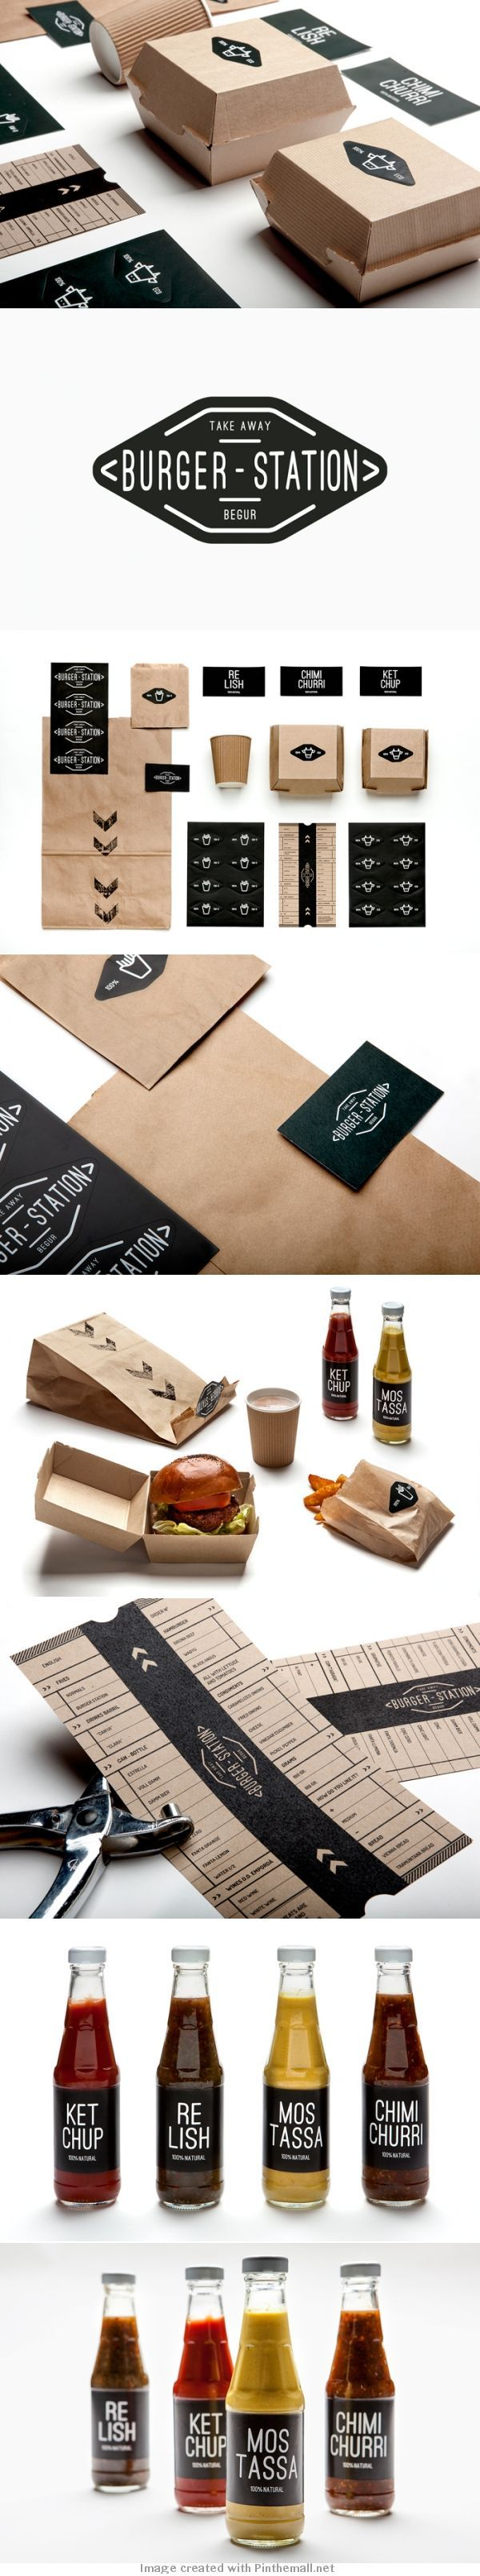 Retro vintage logo design. Marketing material really boosts the design. food packacking